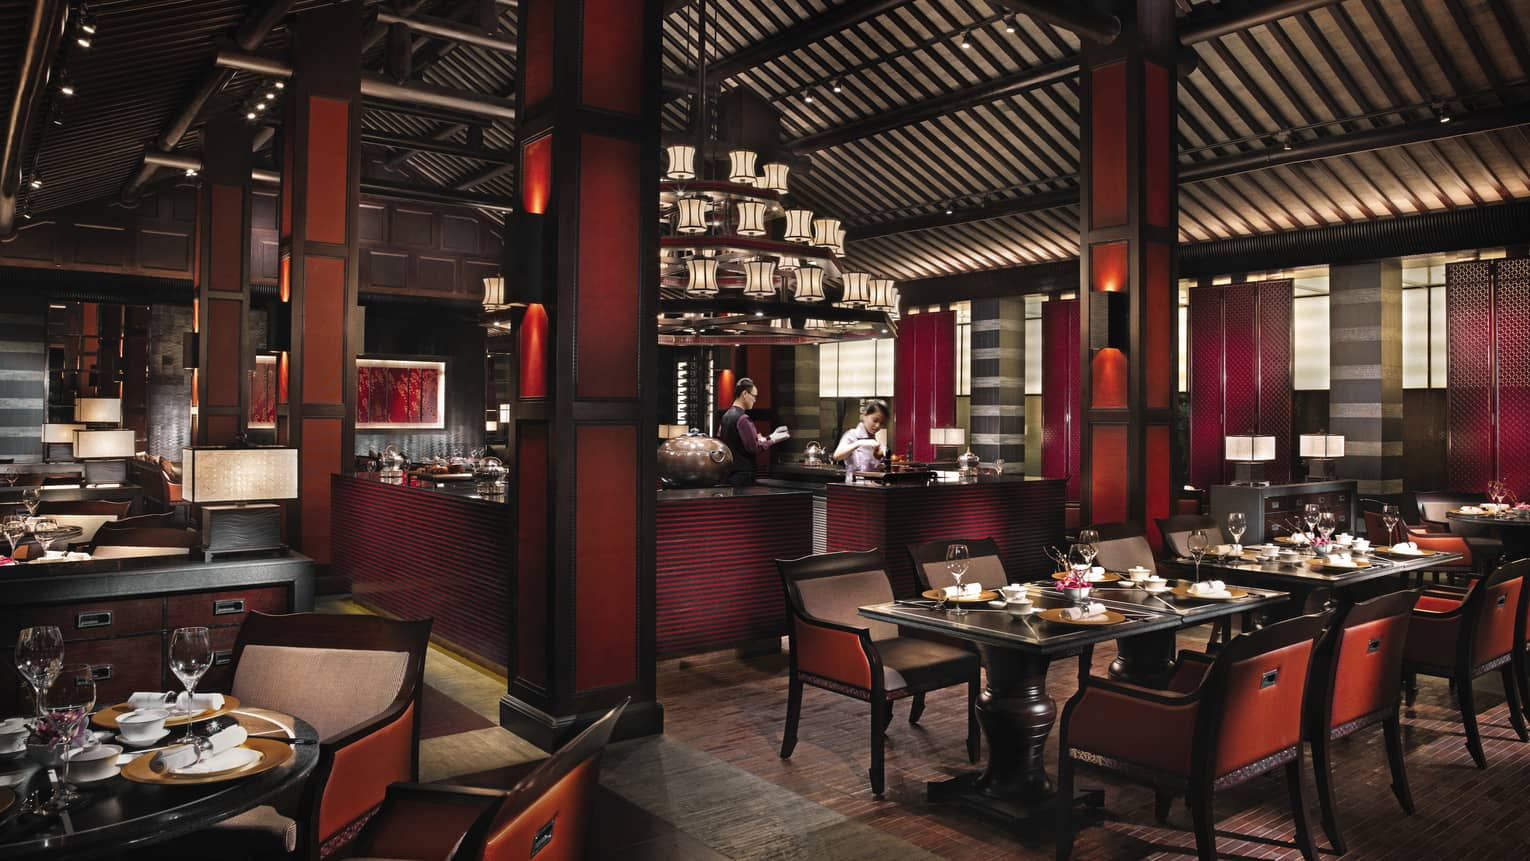 Jin Sha dining room with dark red-and-black decor